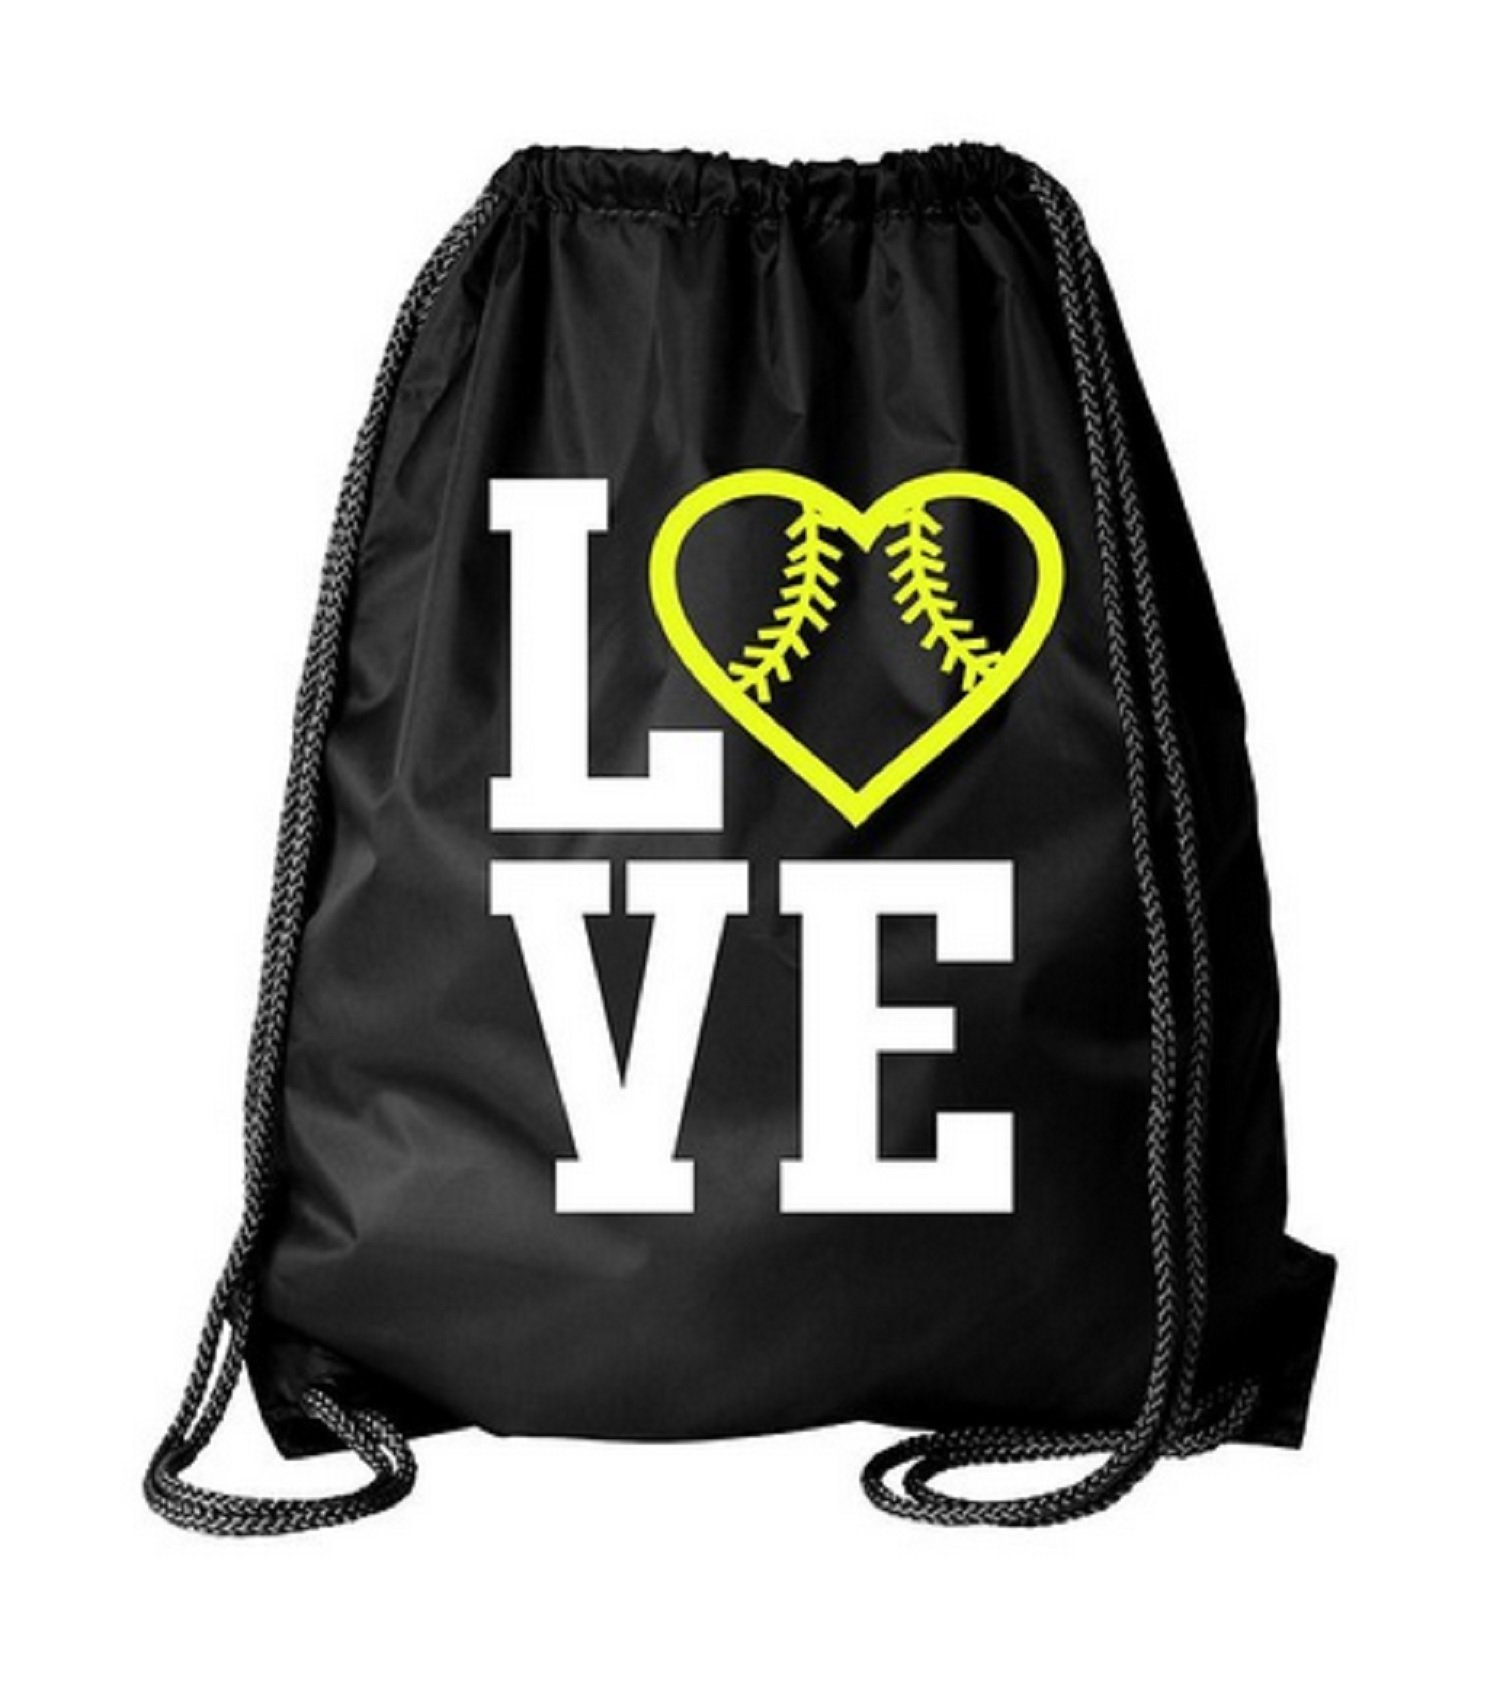 Kenz Laurenz Softball Drawstring Bag - Cinch Sack Stadium String Bags Cheap Backpacks Yellow Red Stitching Garment Back Pack Tote (12)